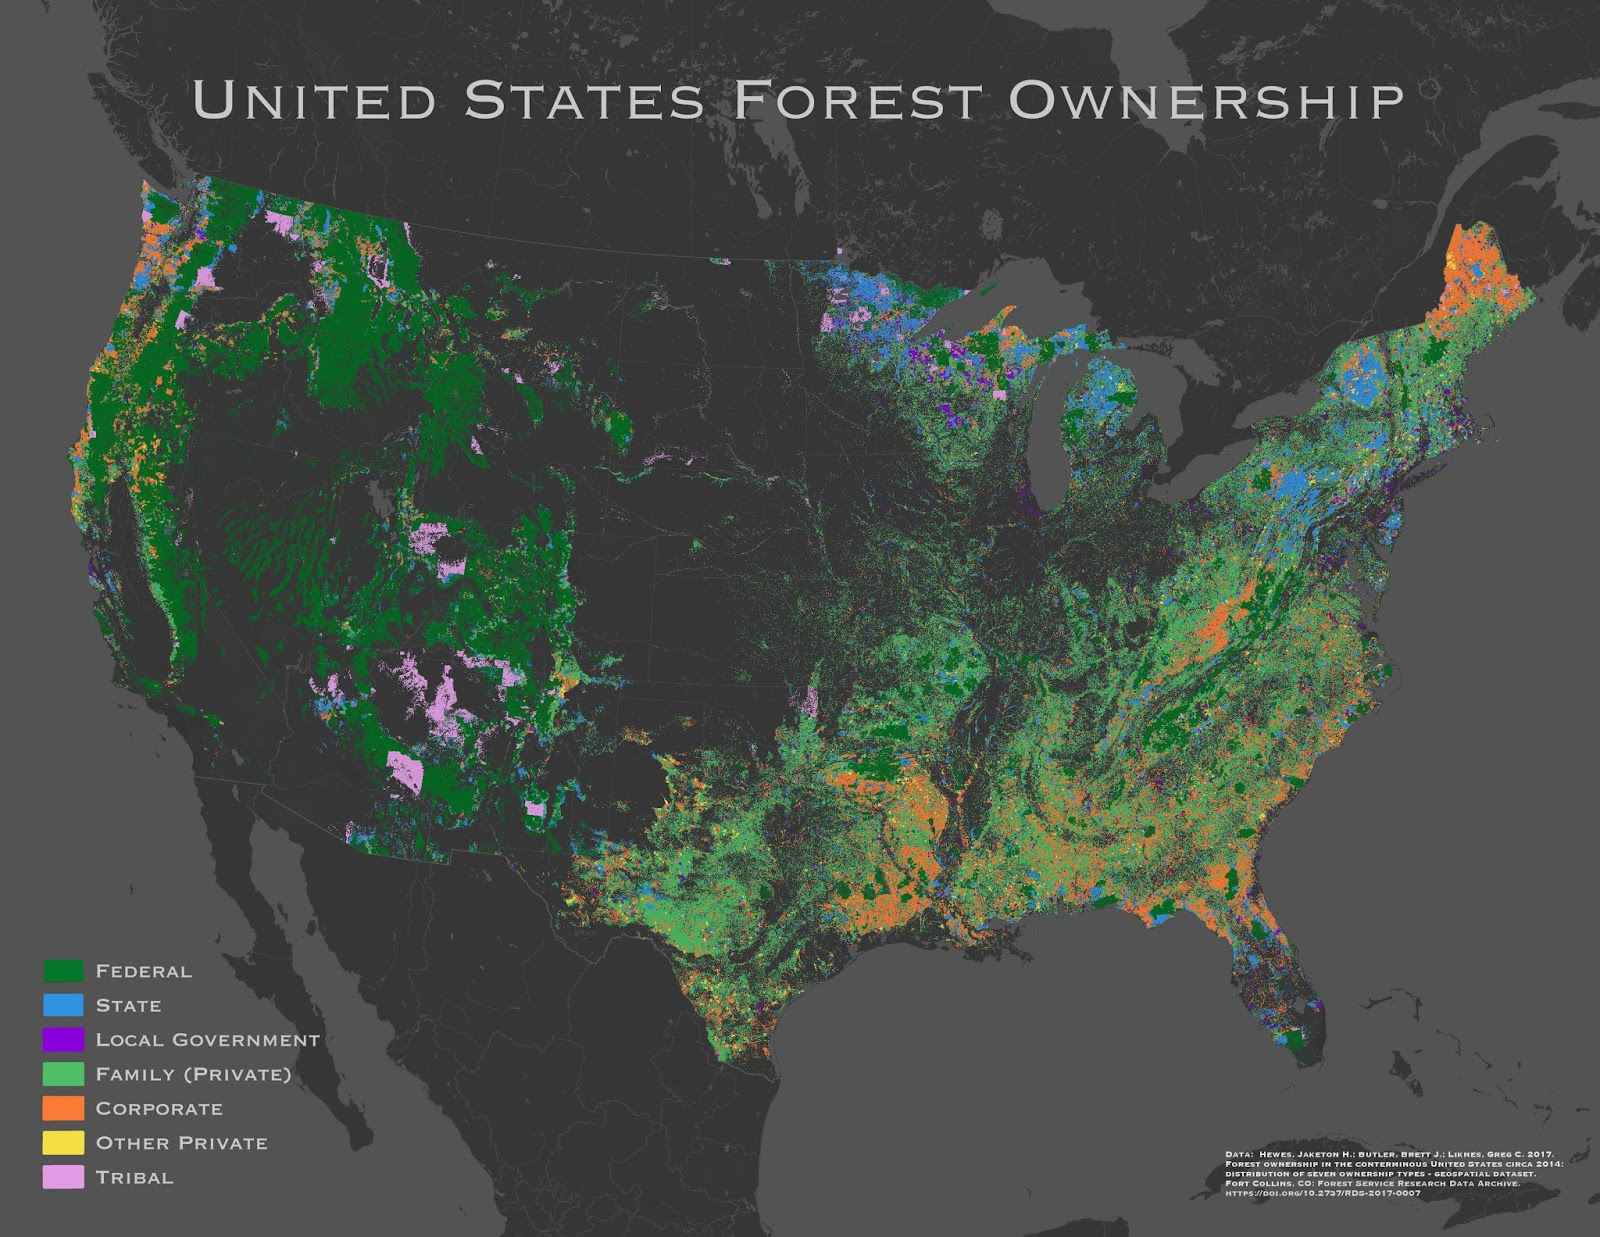 Forest Ownership in the U.S.